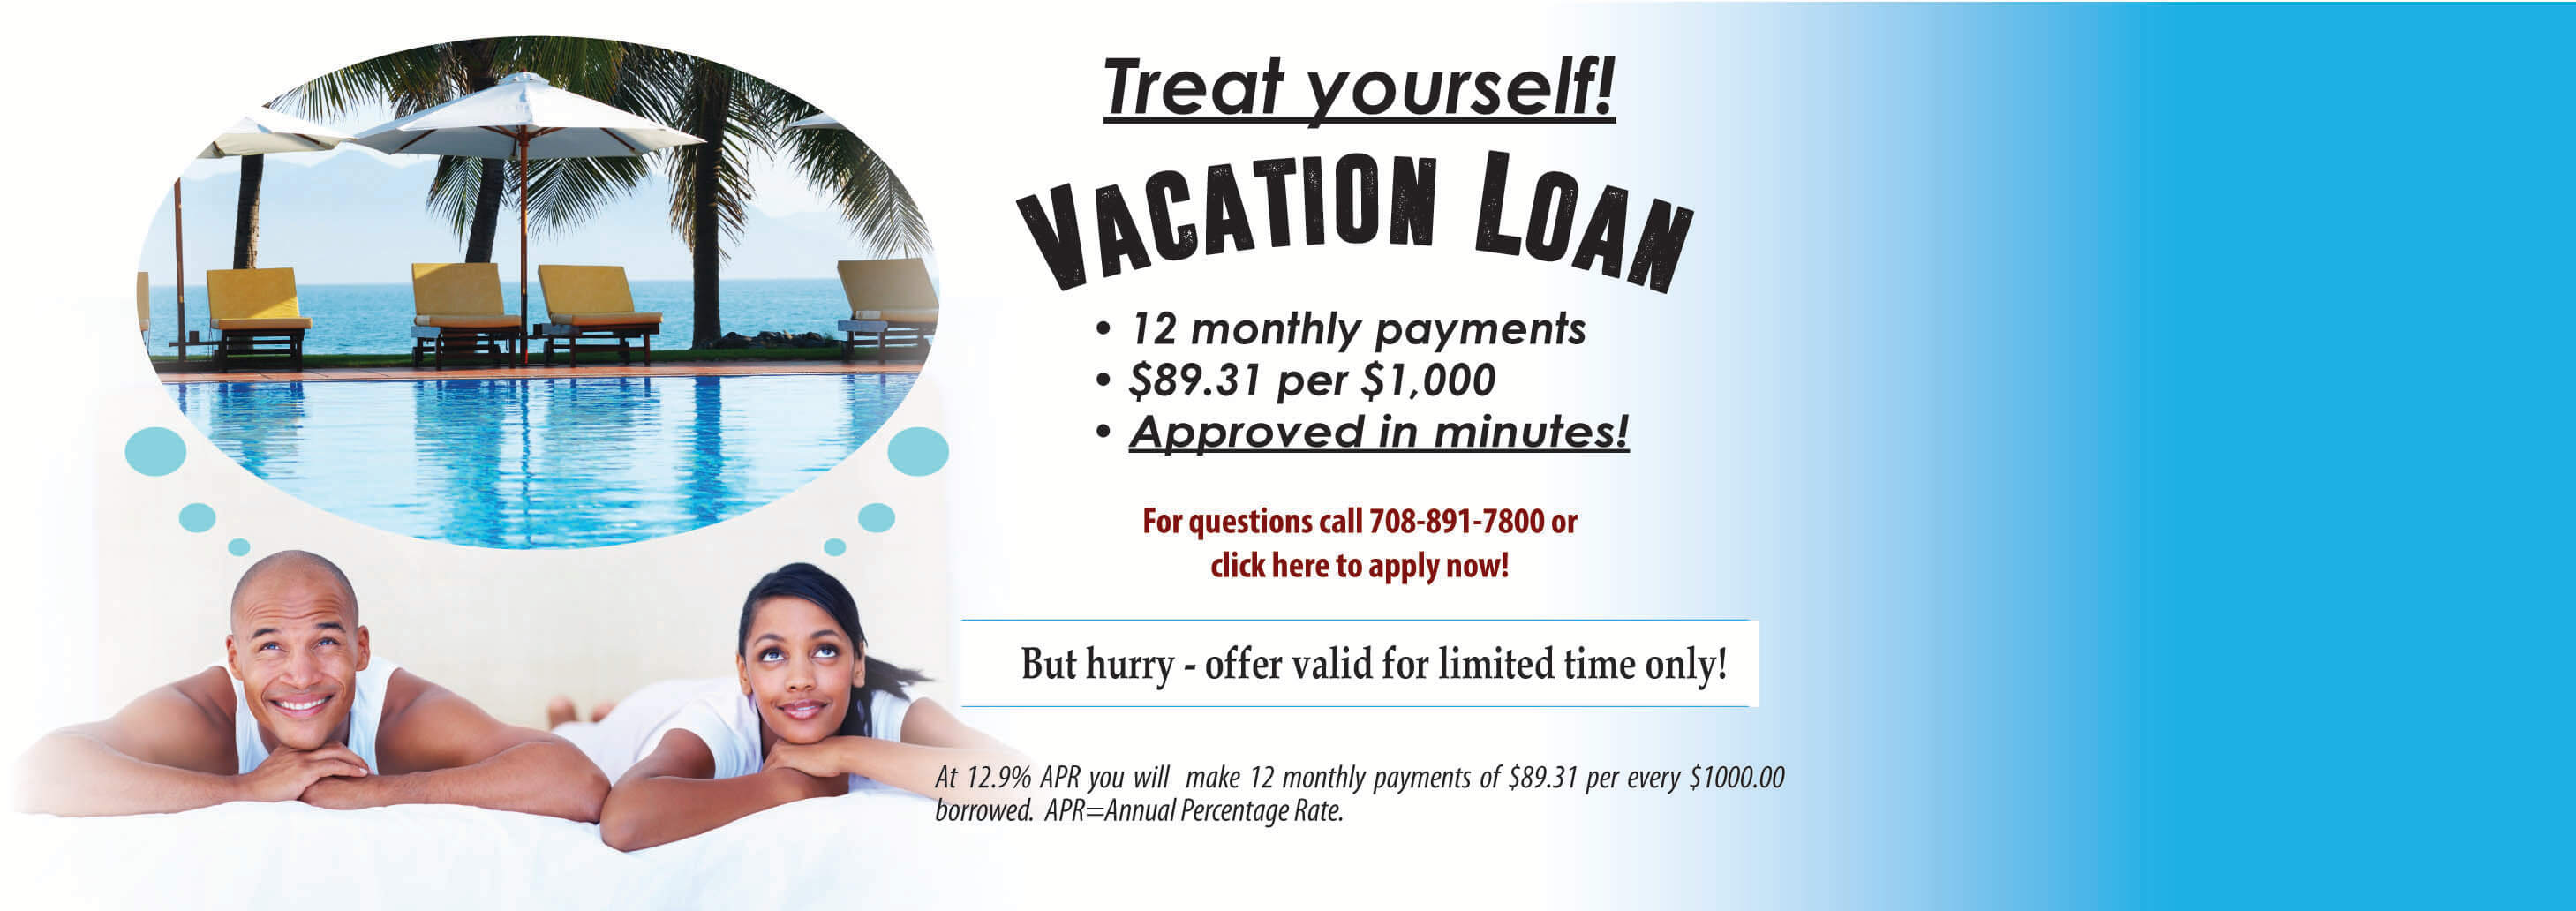 Treat yourself to your Vacation Loan!